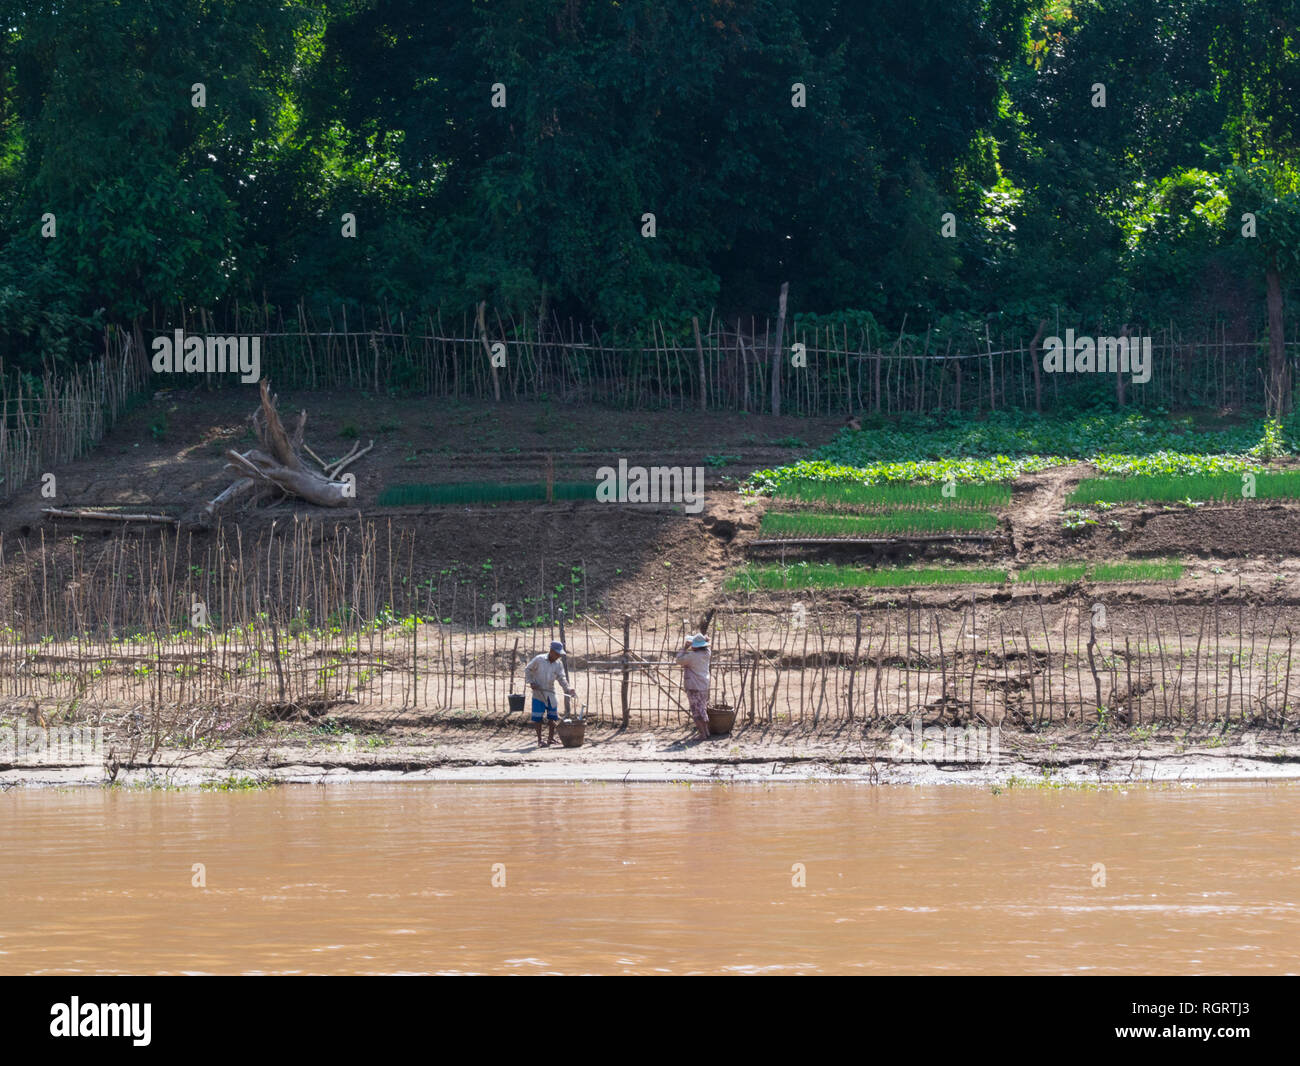 Farmers working on the edge of their land on riverside of mighty Mekong River Luang Prabang Laos Asia signs od riverbank erosion - Stock Image